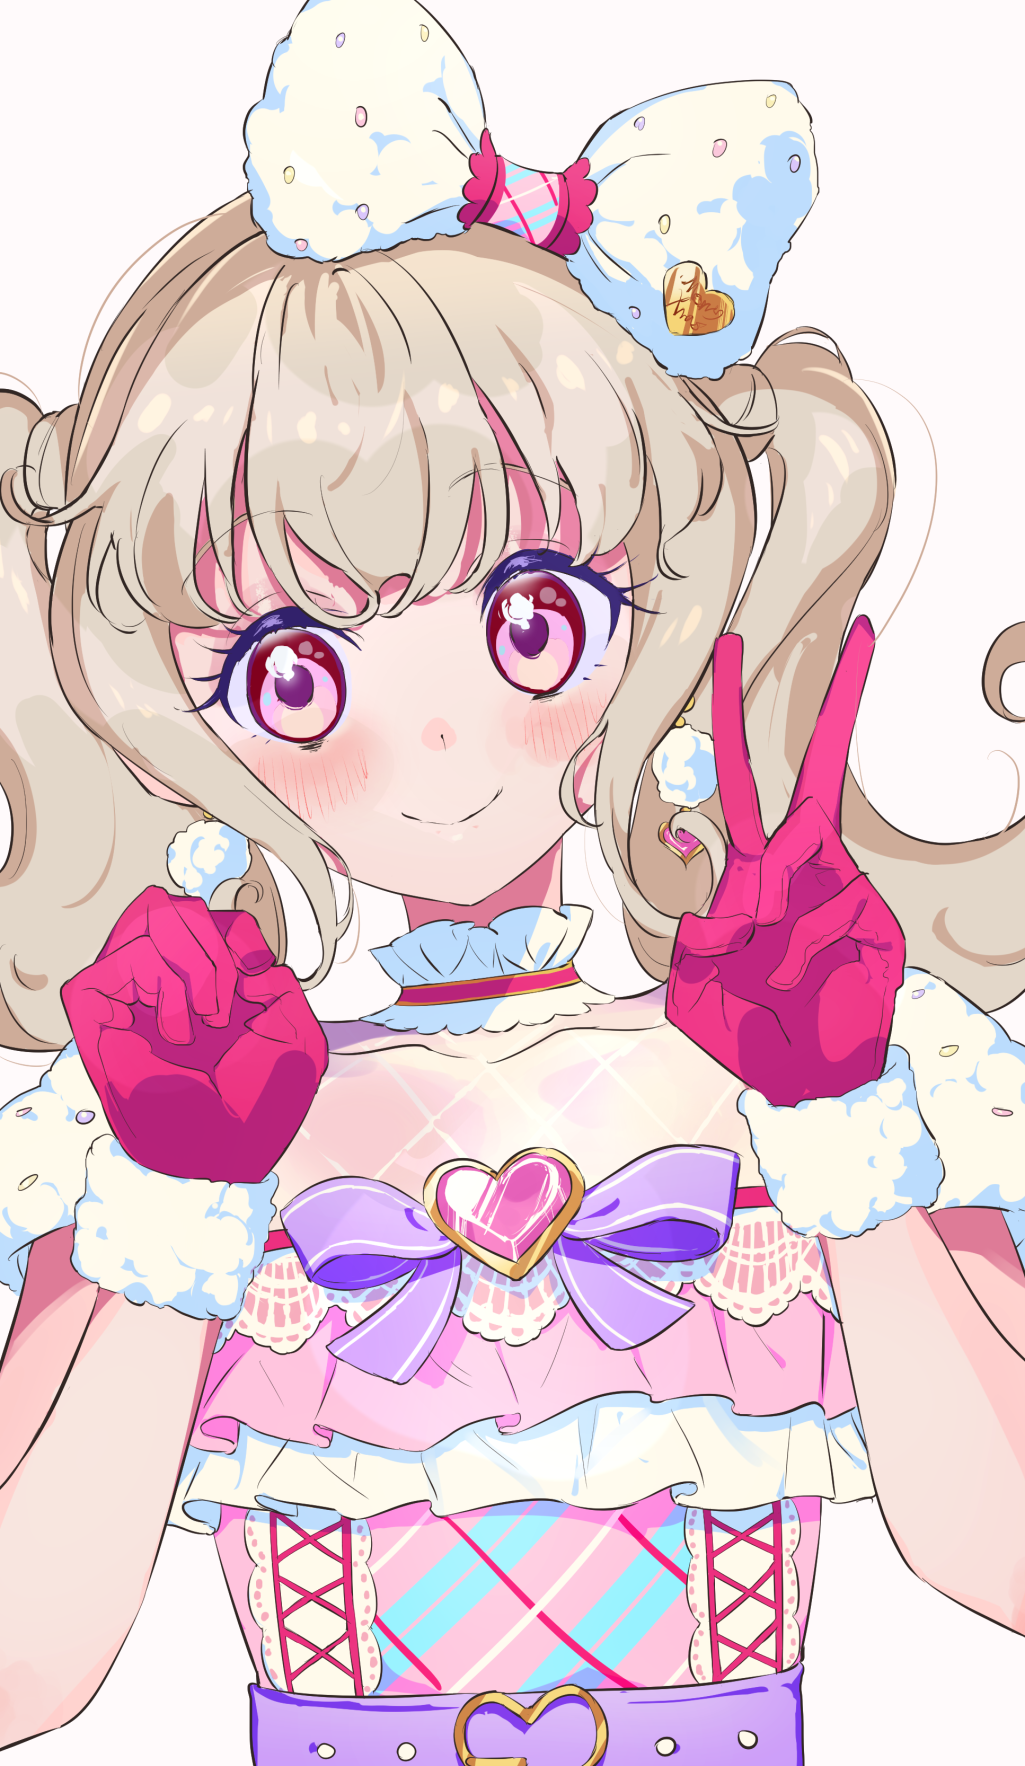 1girl aikatsu!_(series) aikatsu_on_parade! blush bow choker clenched_hand close-up earrings eyebrows_visible_through_hair fur_trim gloves hair_bow heart heart_earrings highres idol jewelry kiseki_raki light_brown_hair long_hair looking_at_viewer multicolored multicolored_eyes red_gloves short_sleeves simple_background smile solo twintails upper_body v white_background yamamura_saki